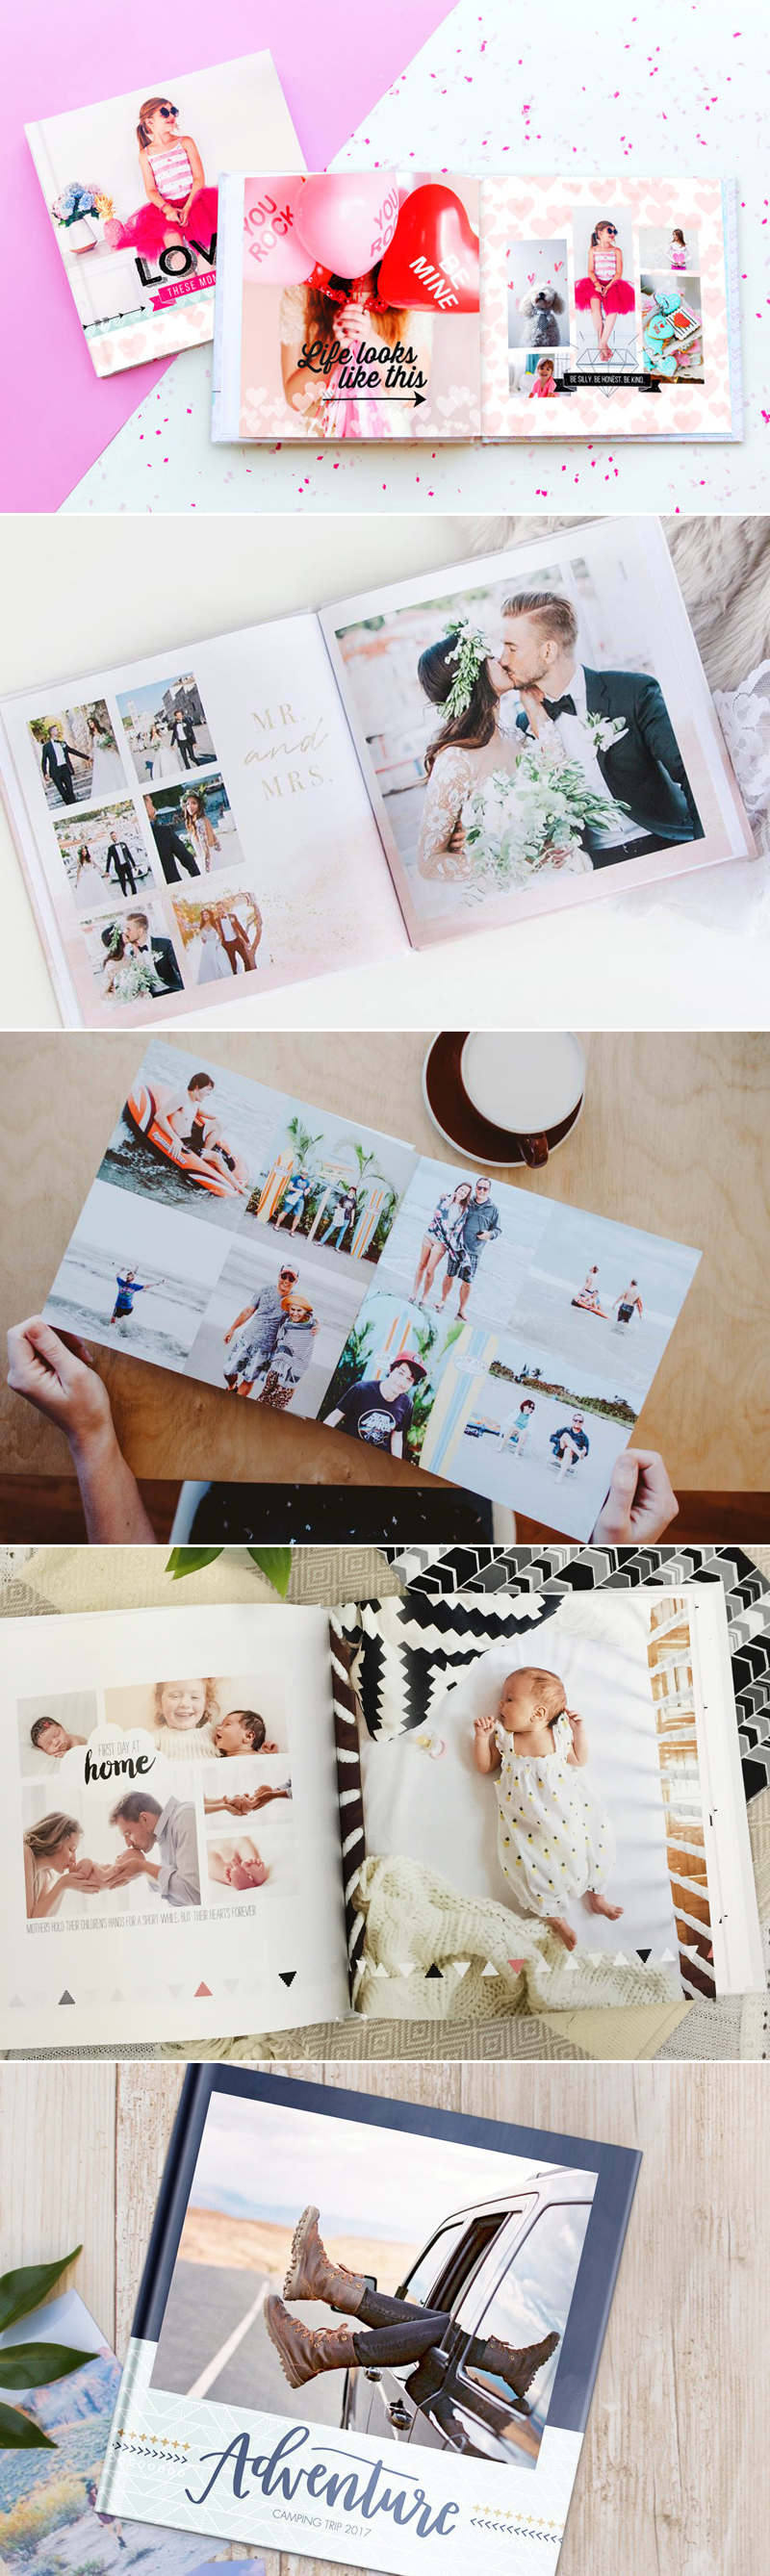 photobook03-mixbook